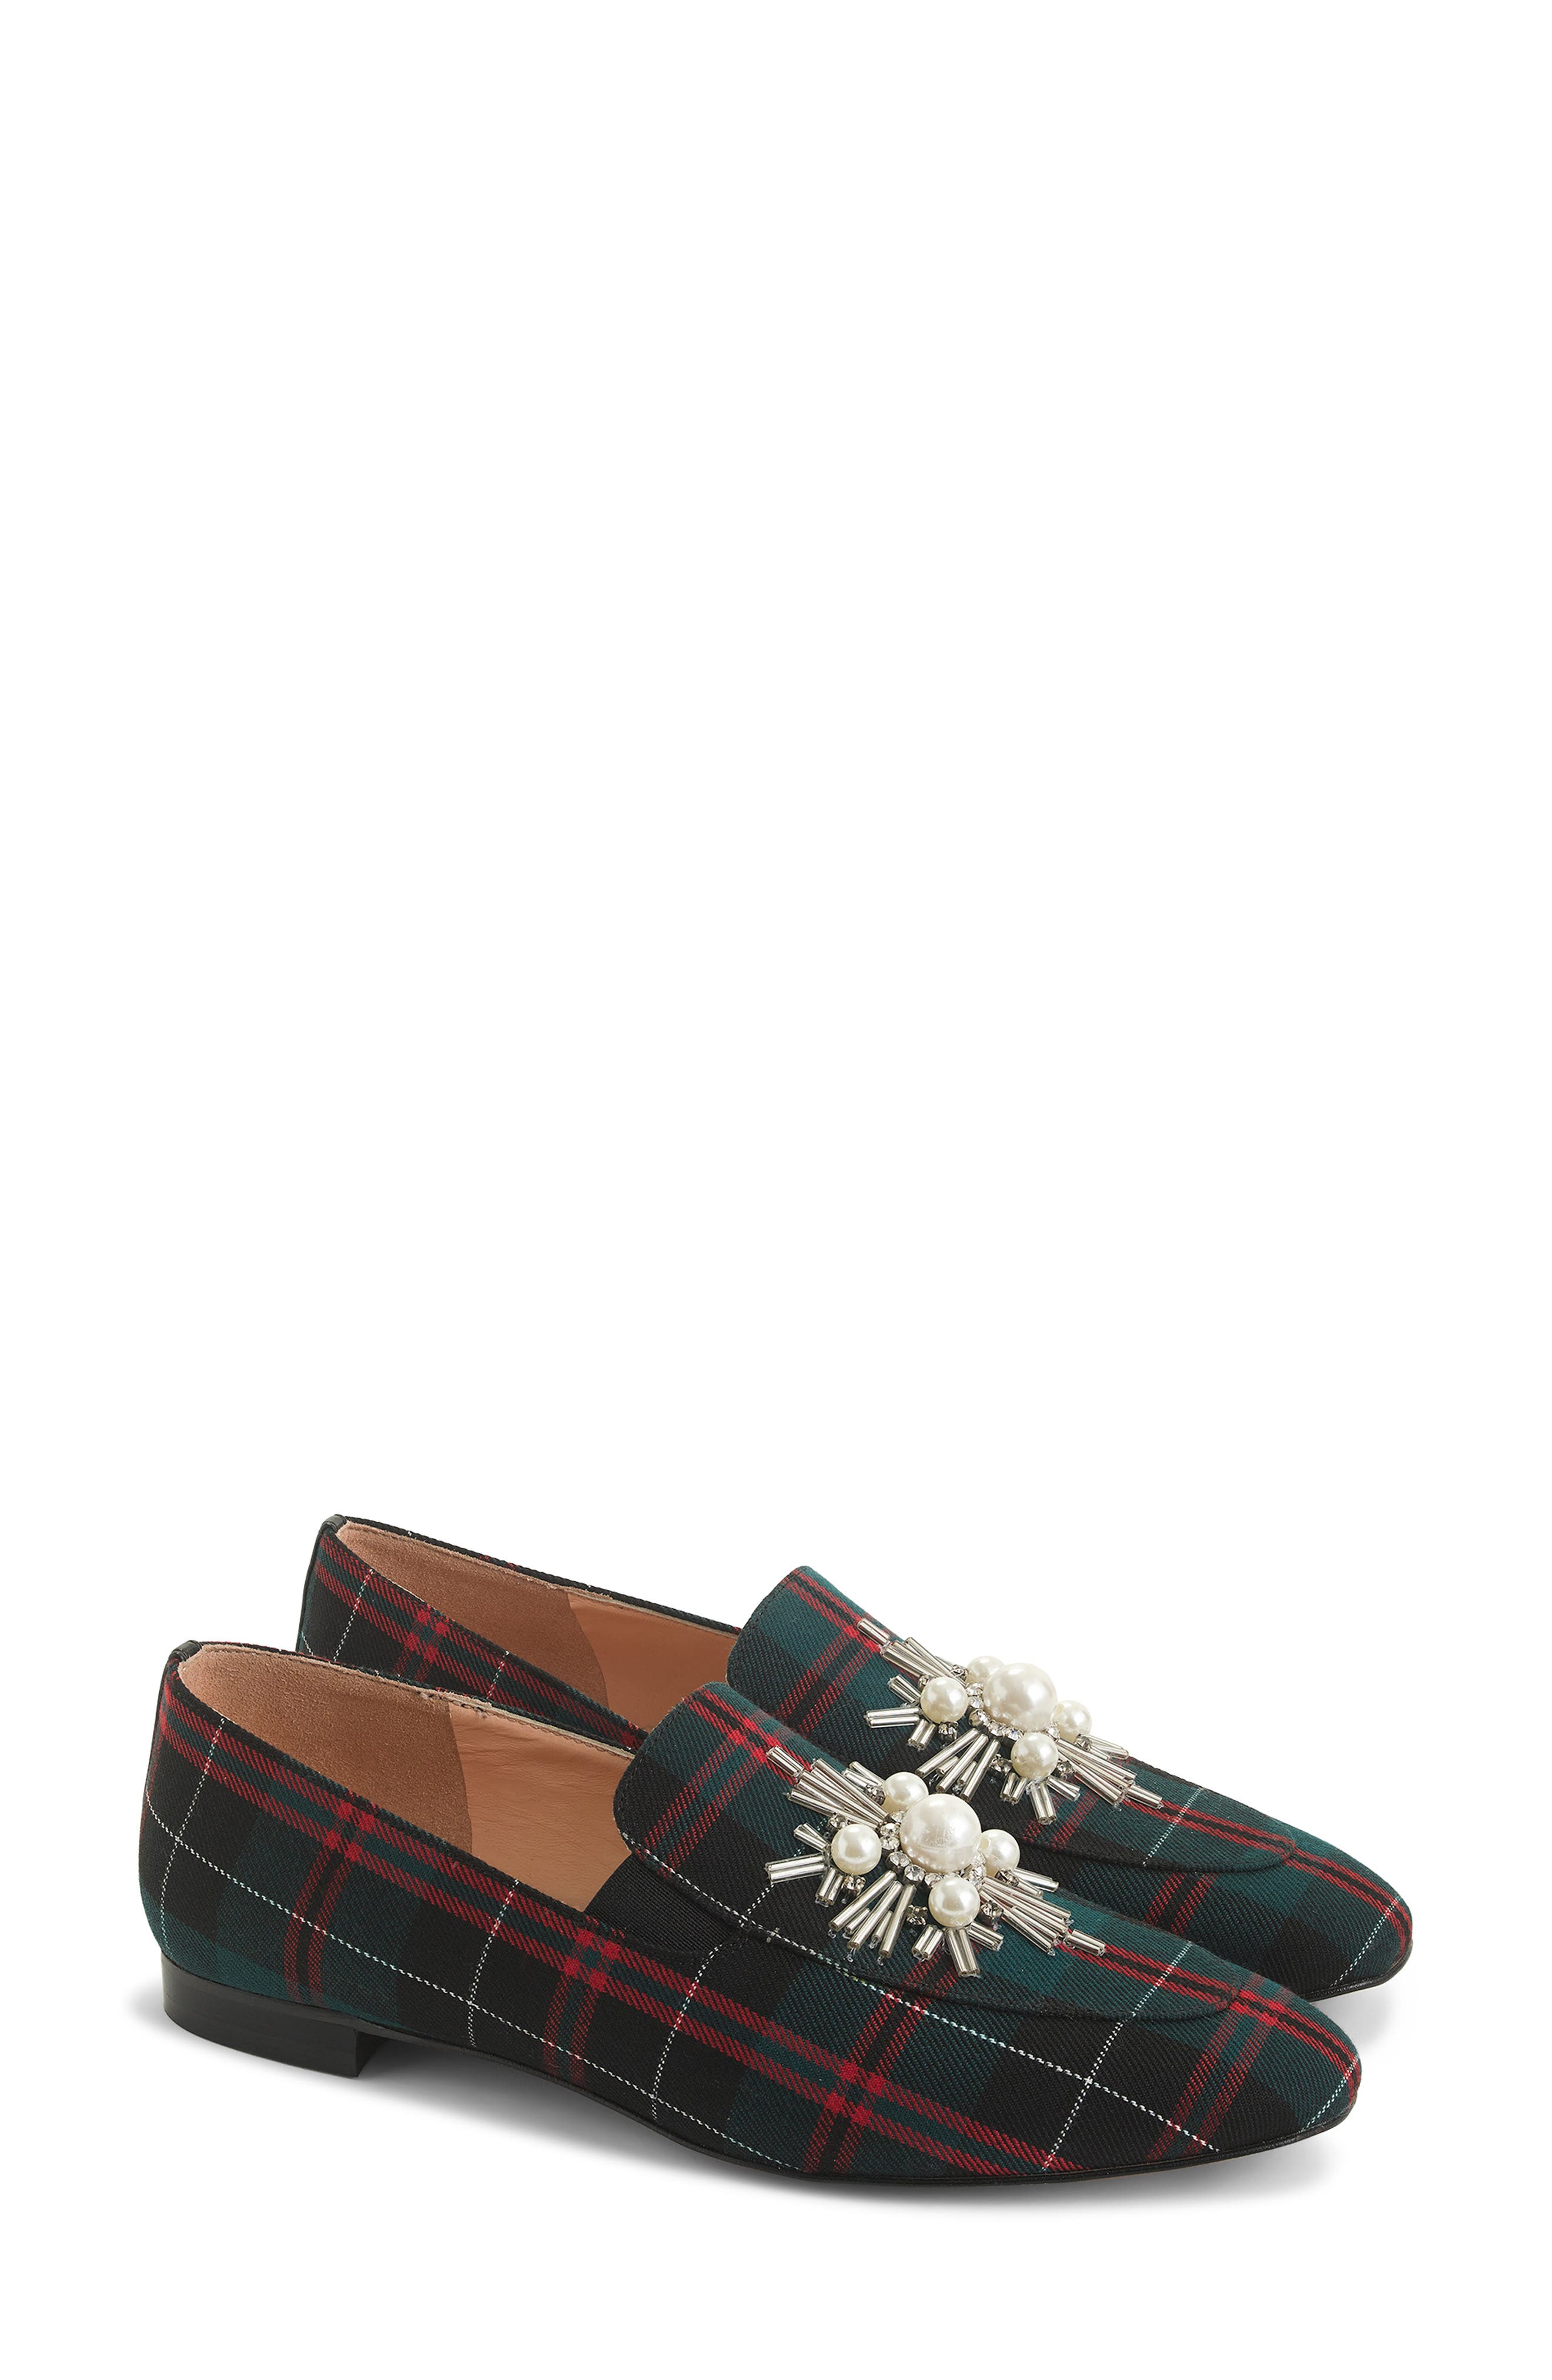 J. Crew Embellished Plaid Janie Loafer, Main, color, GREEN PLAID FABRIC